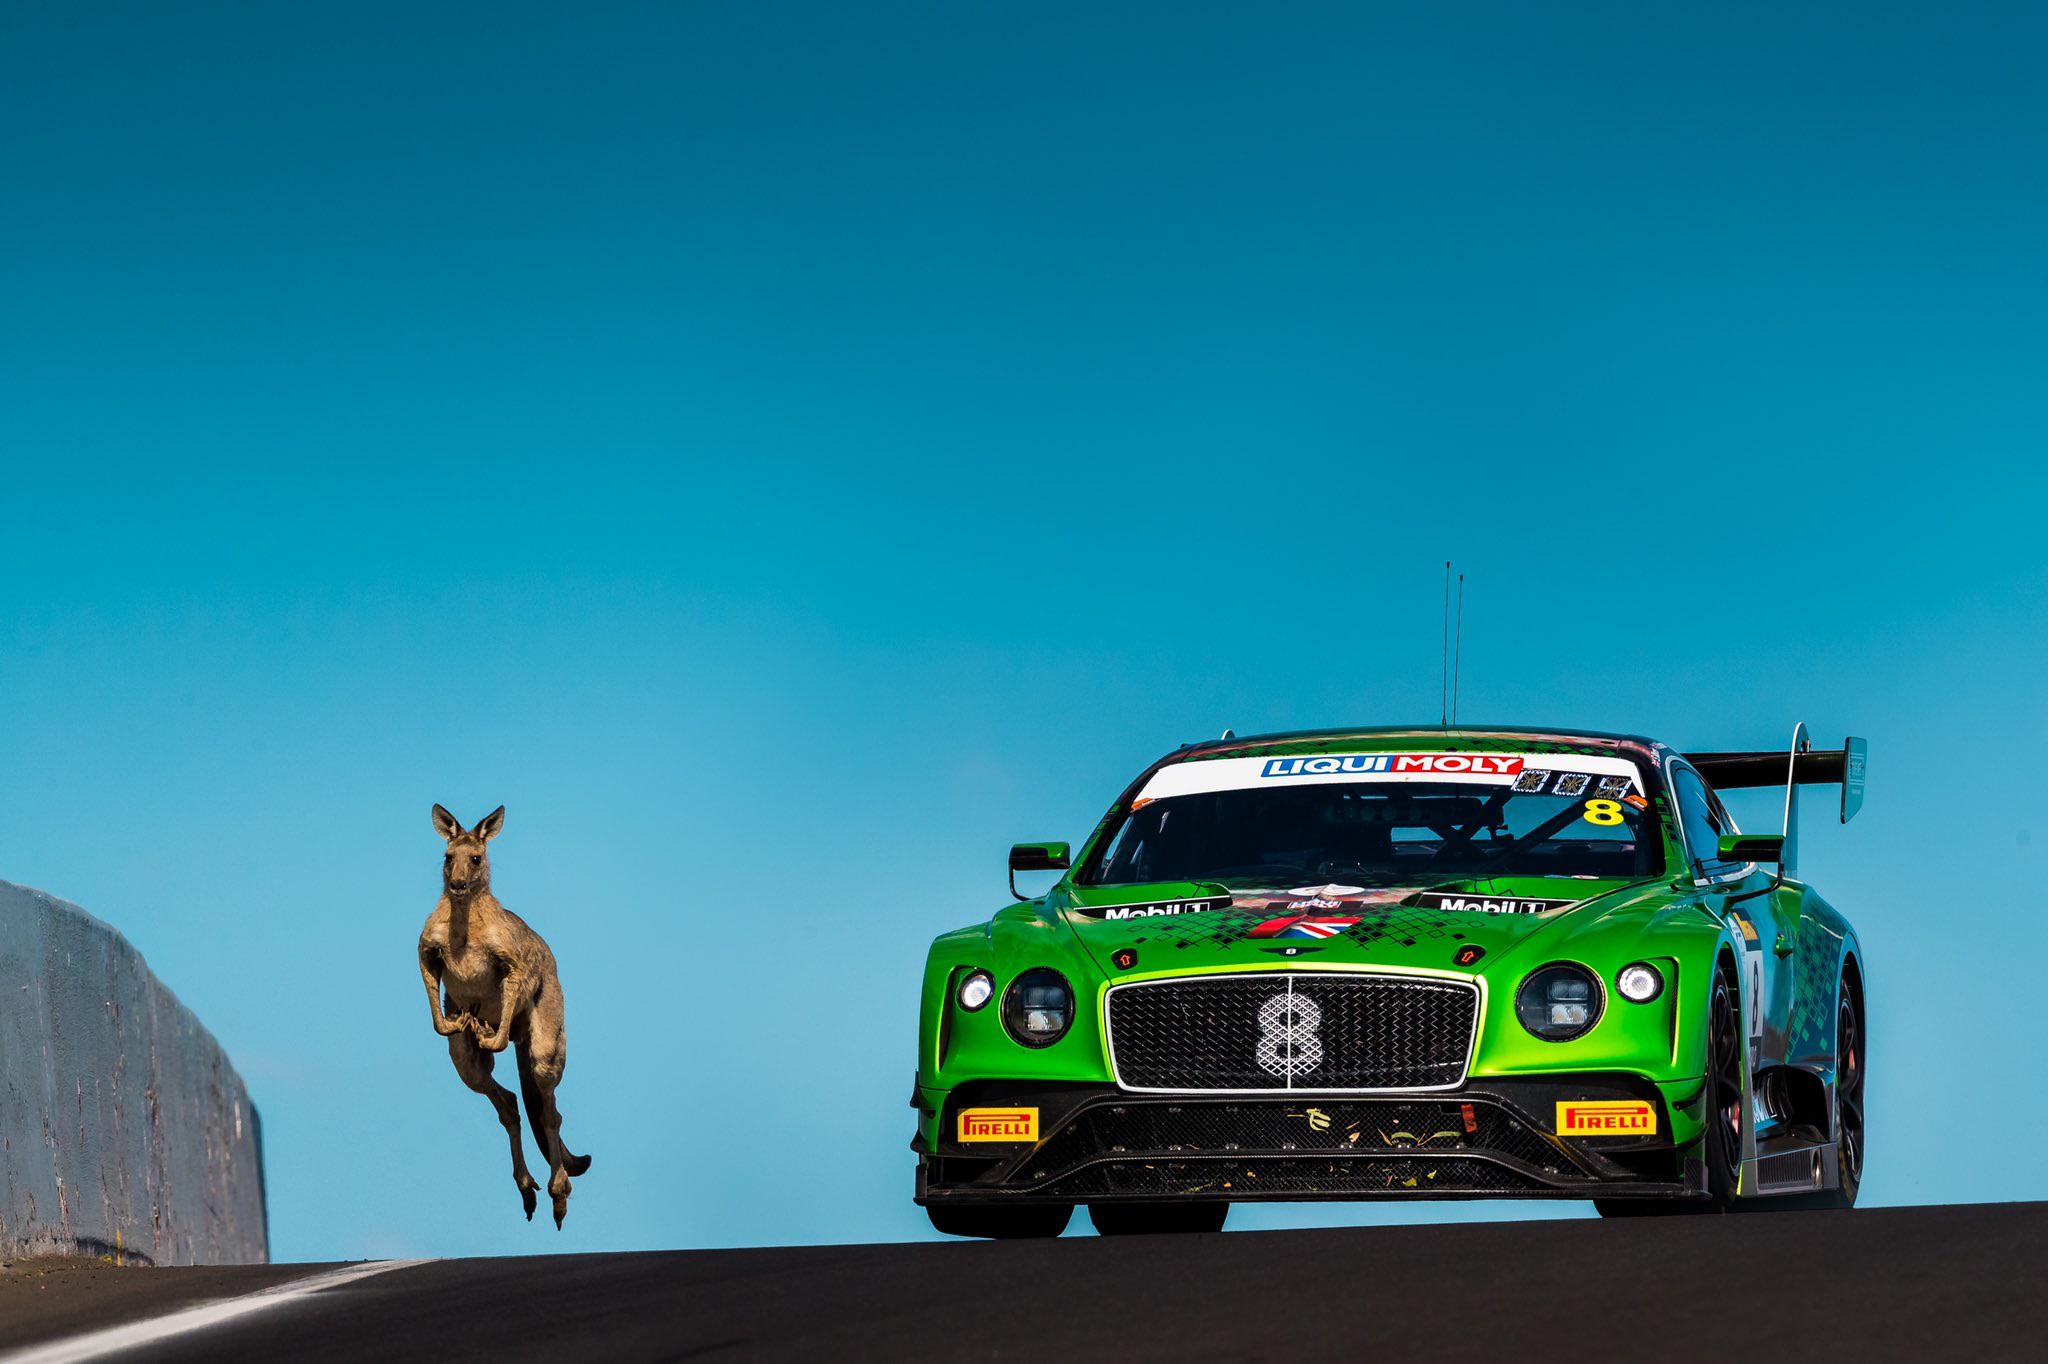 The Bentley Continental GT3 is such a chonker! Kangaroo for reference.